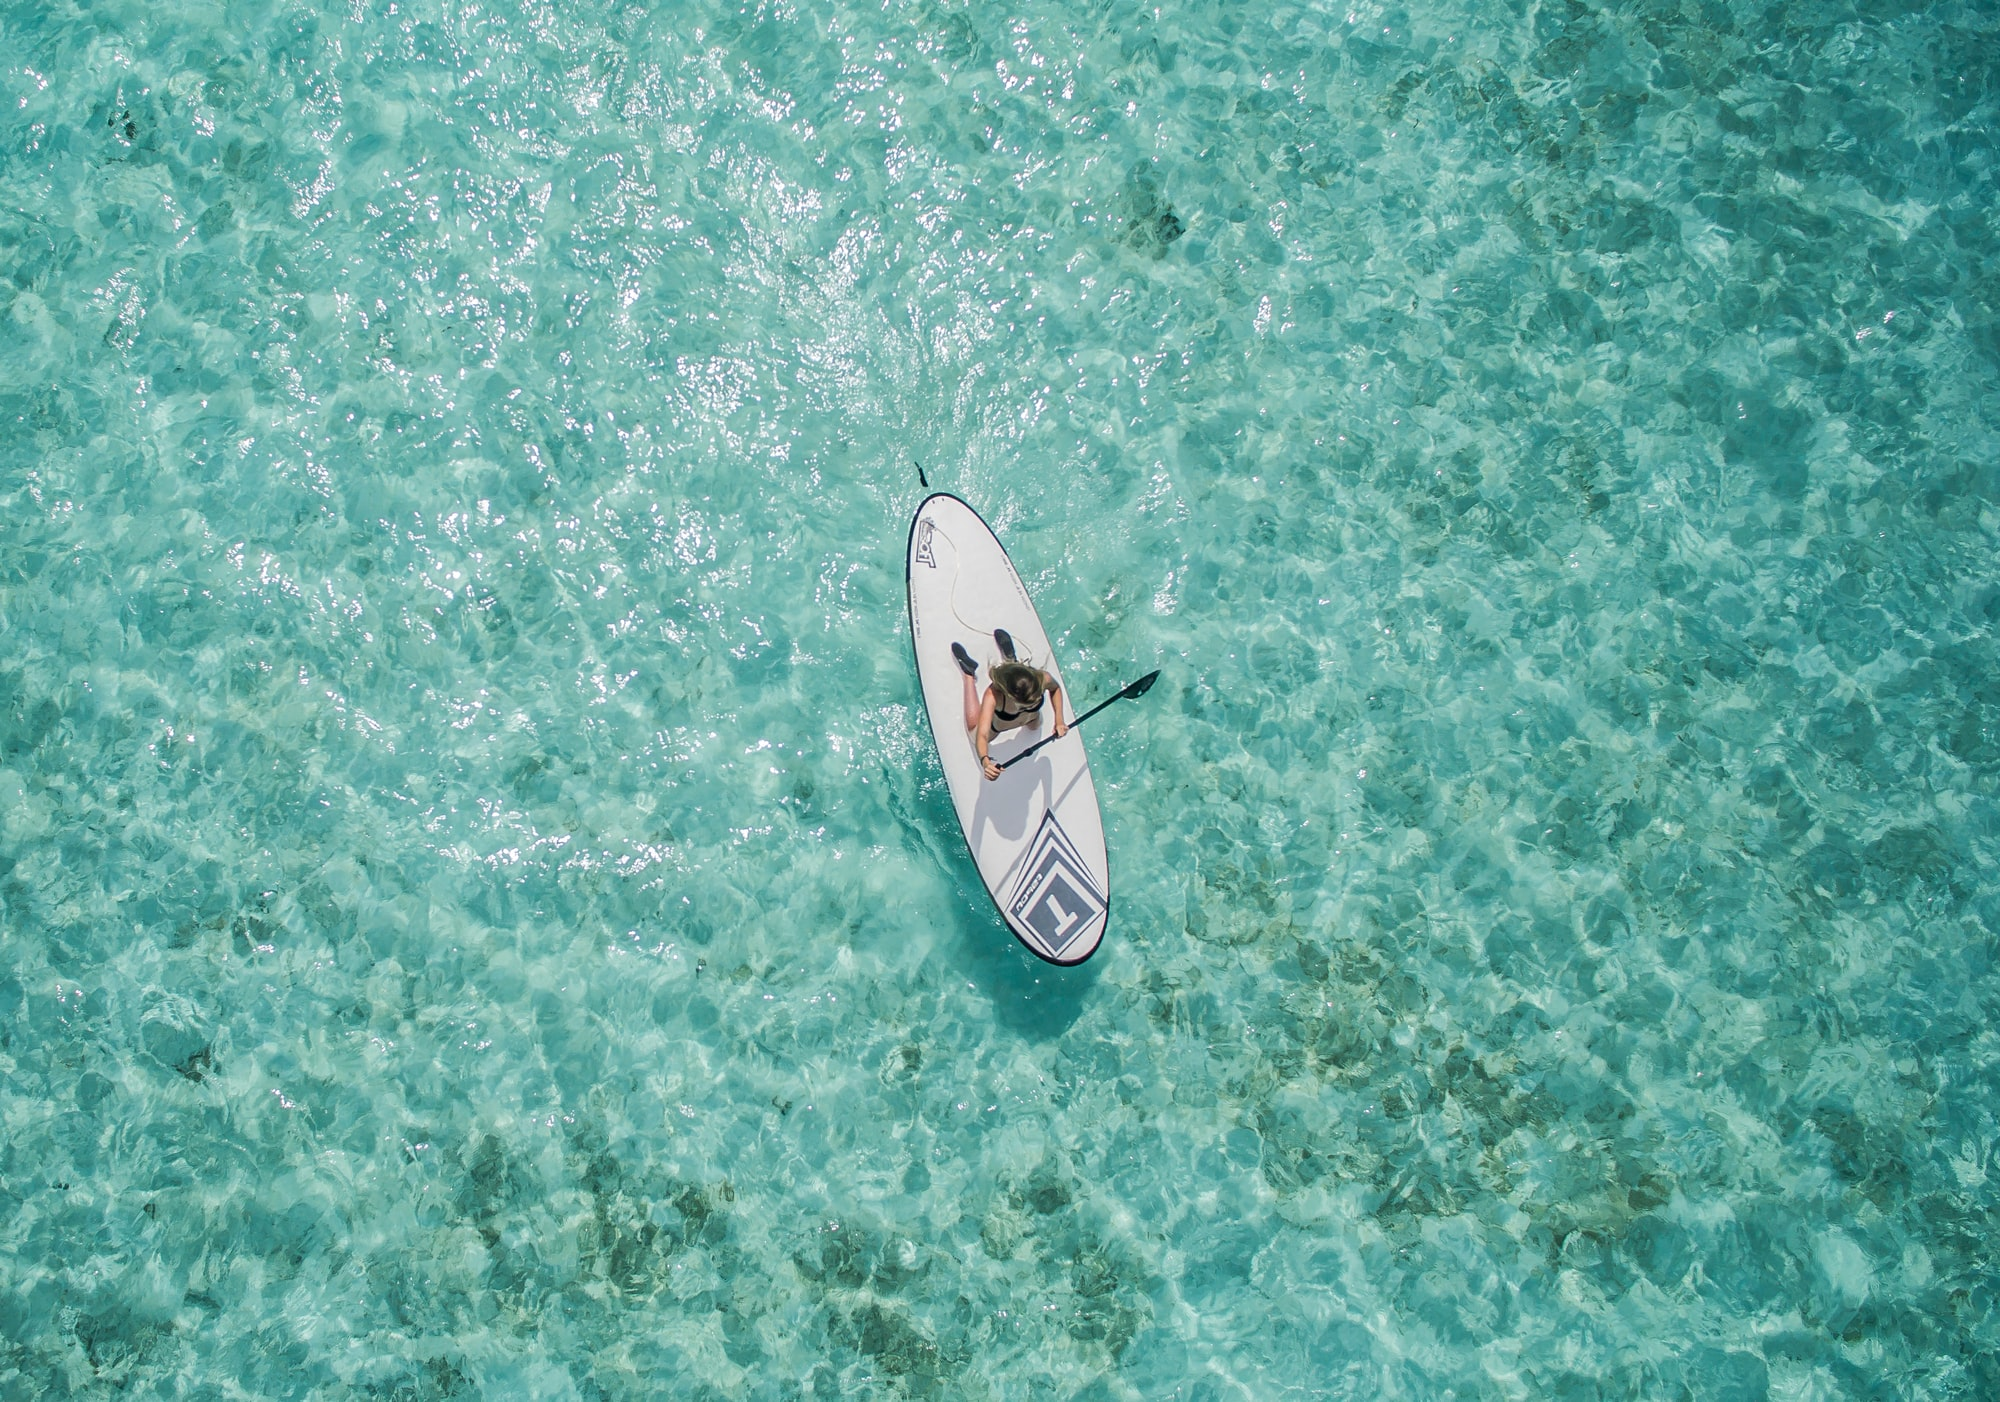 50 vacation captions for Instagram to use this summer